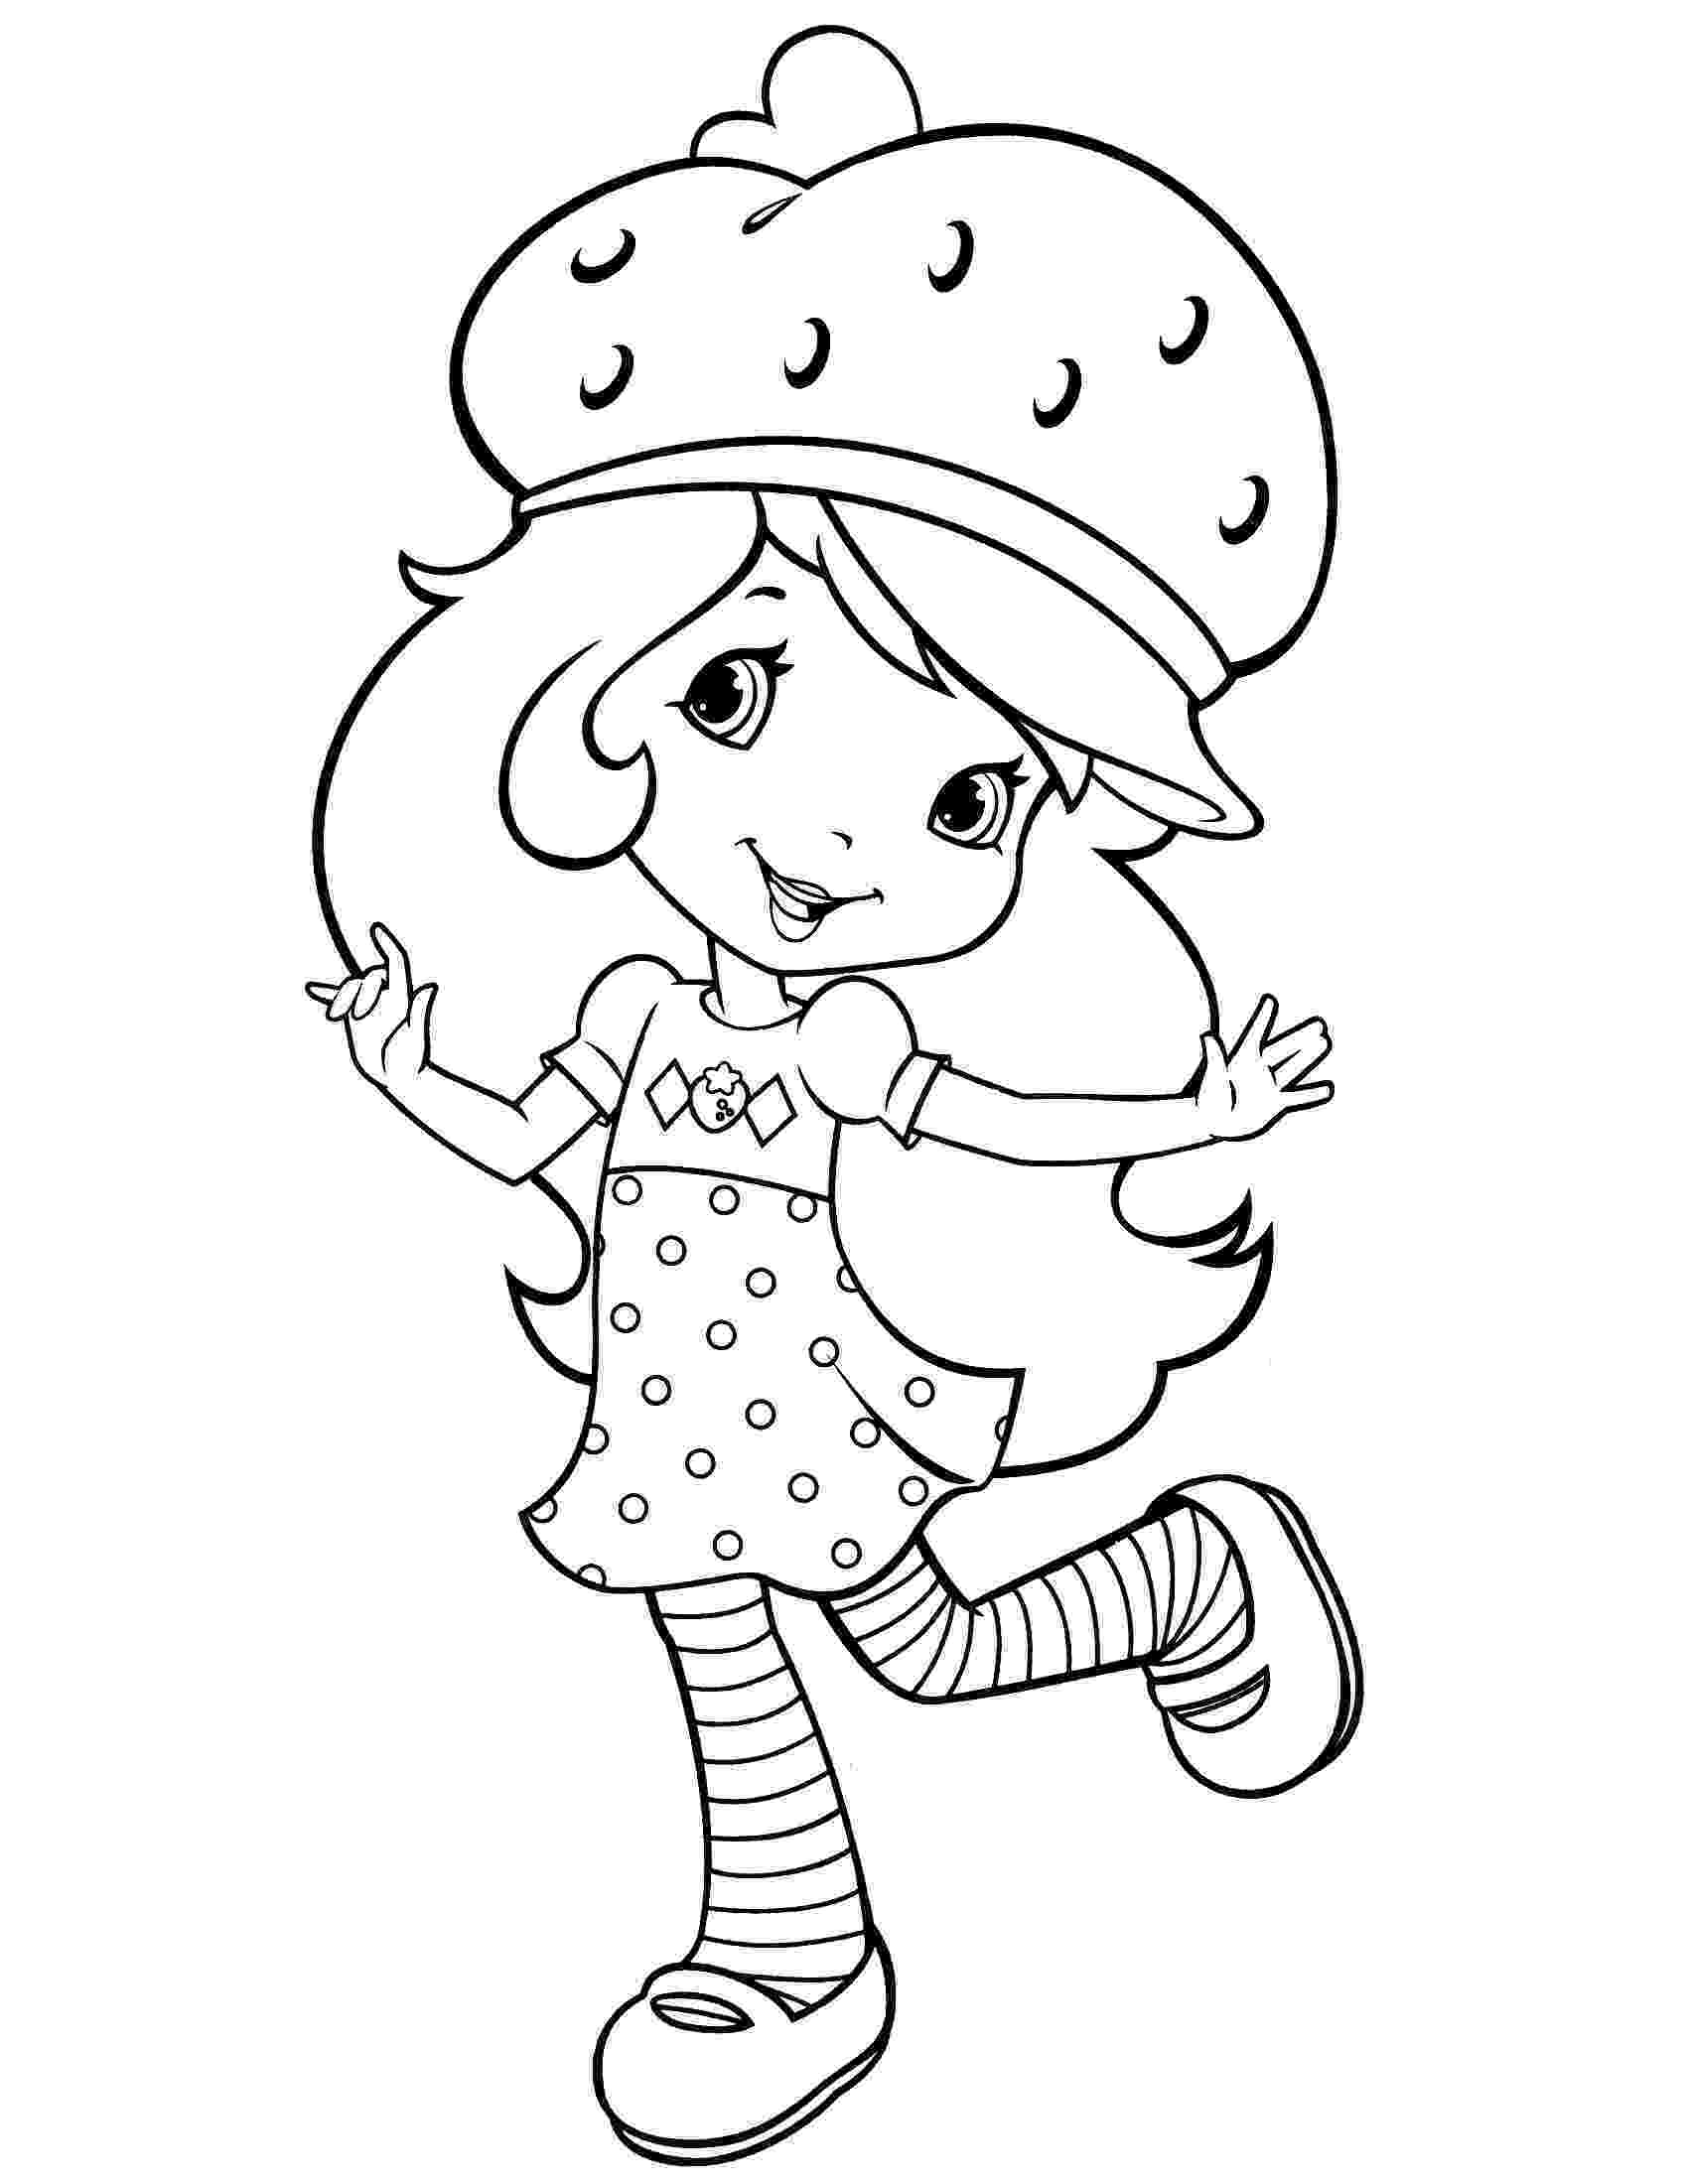 strawberry shortcake printable strawberry shortcake and berrykins coloring page free shortcake printable strawberry